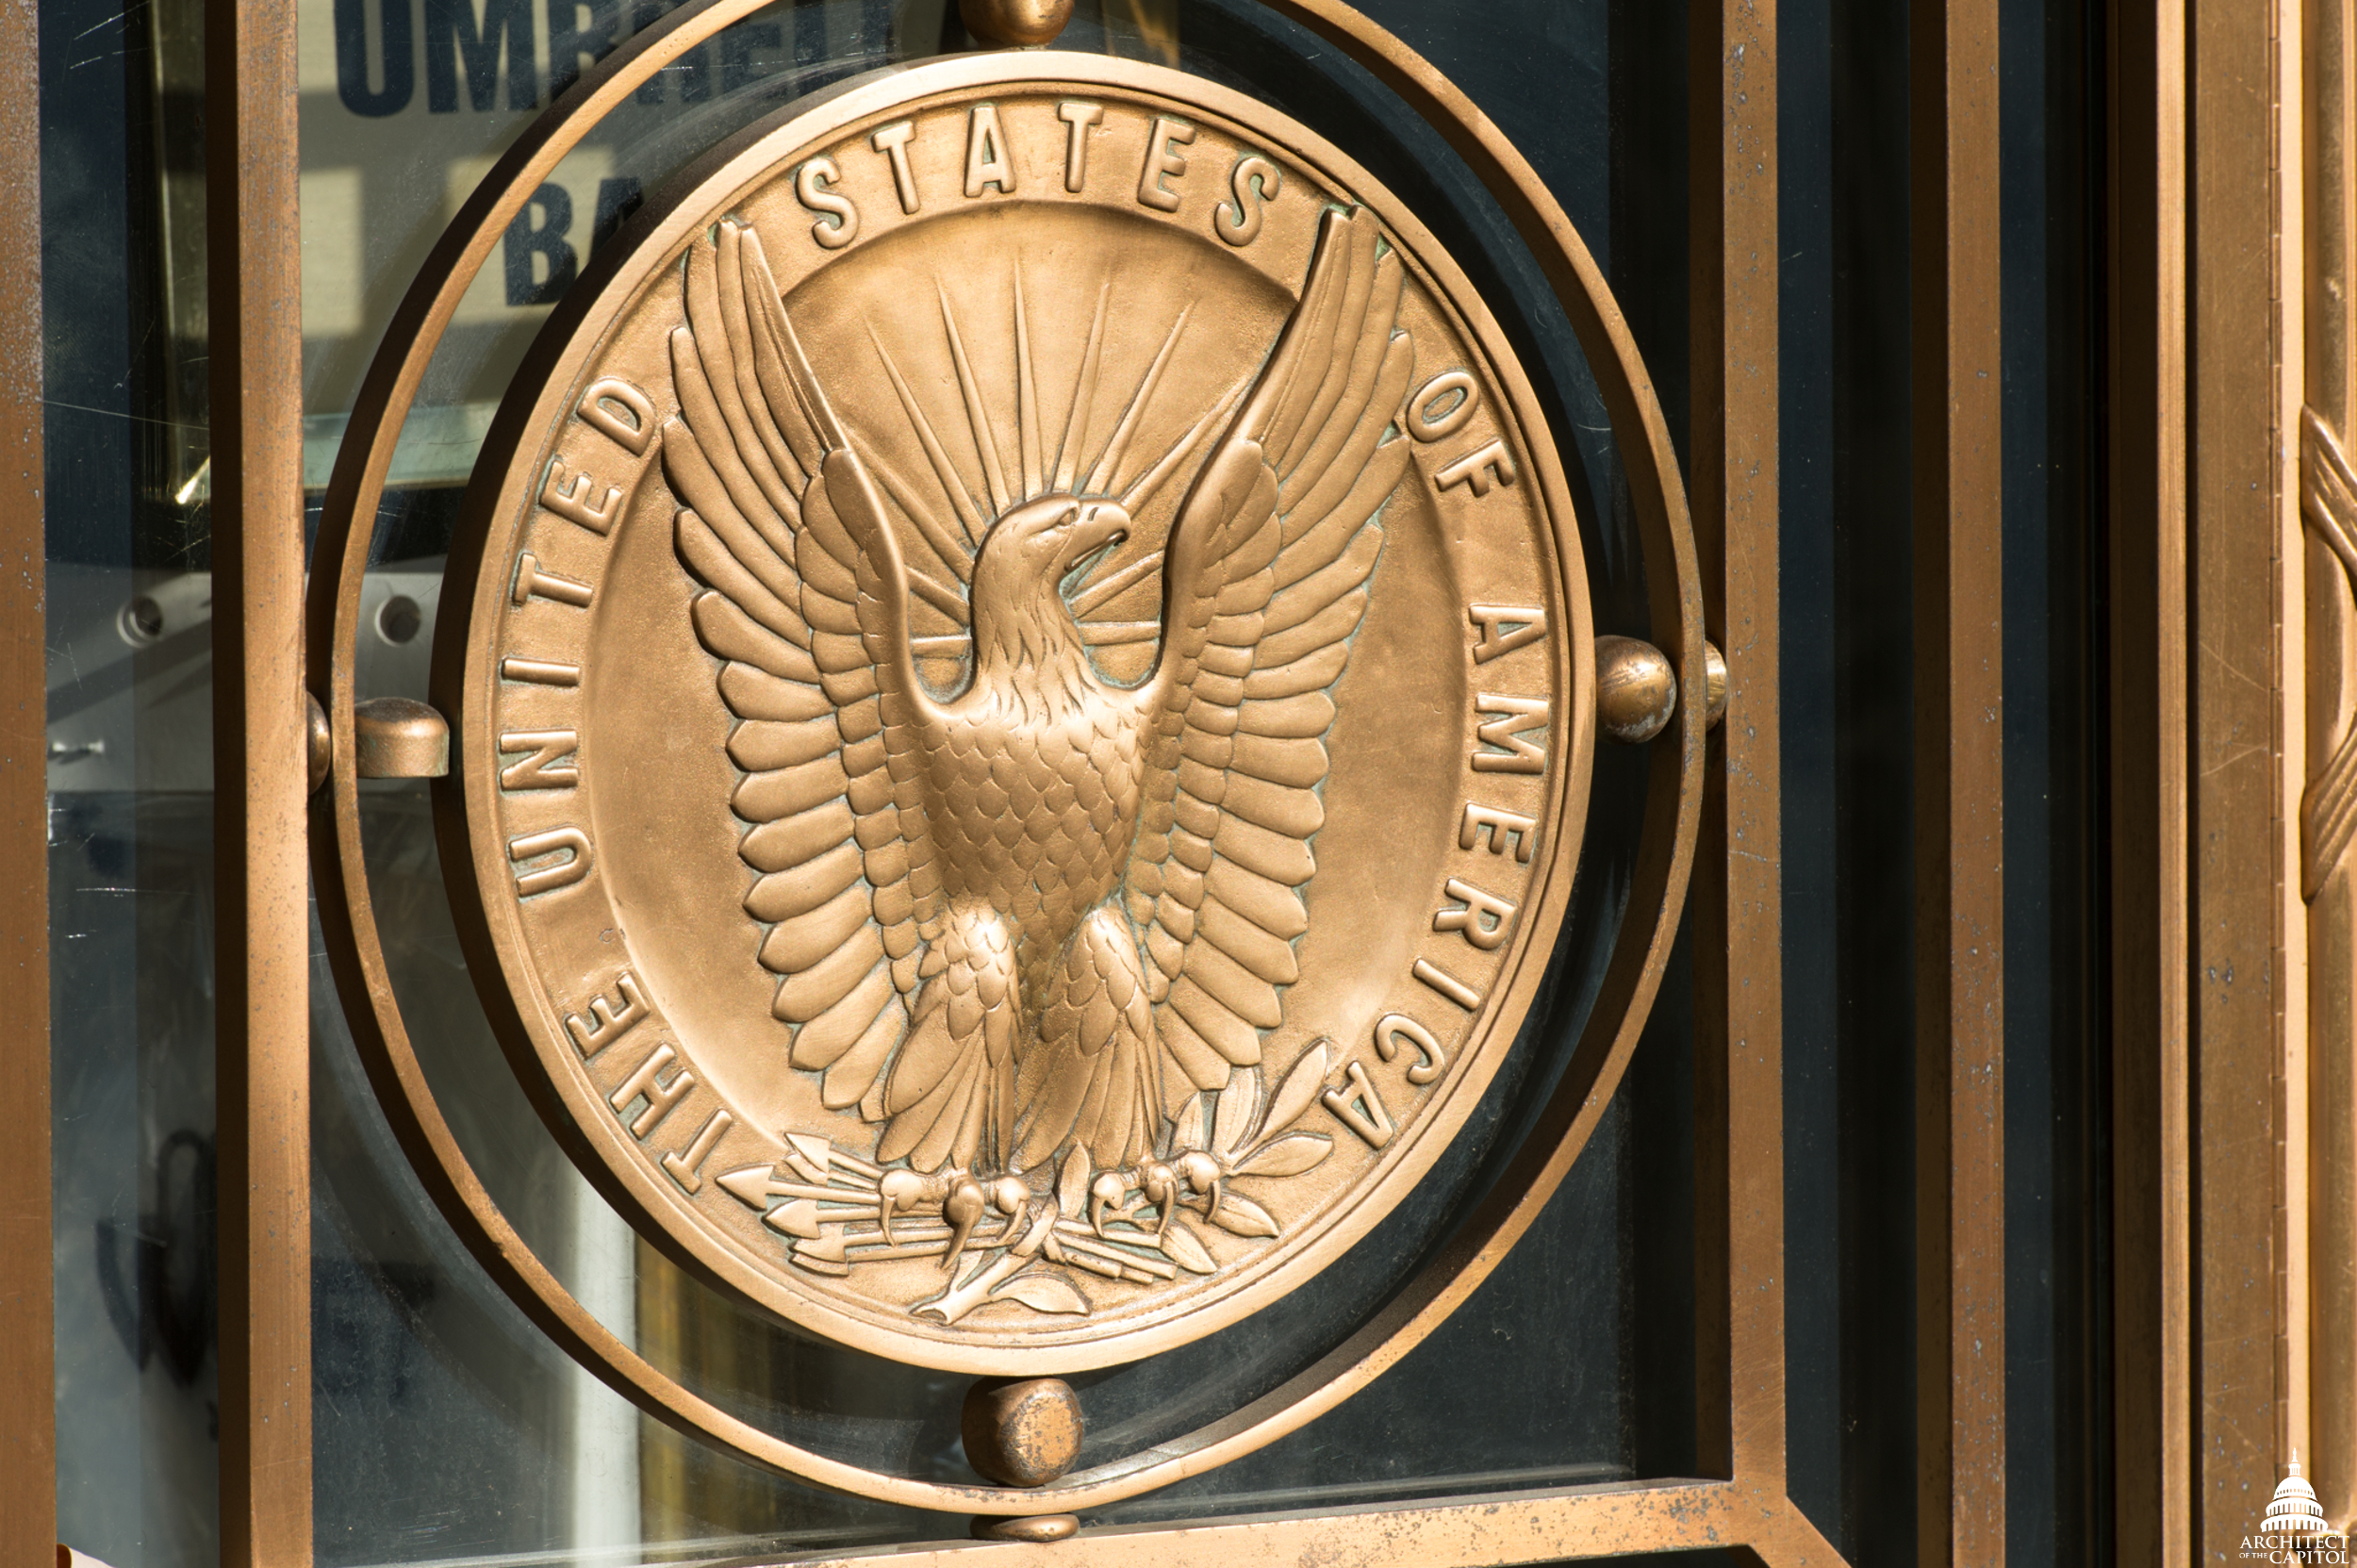 Bronze medallion with eagle the on exterior of the Dirksen Senate Office Building.